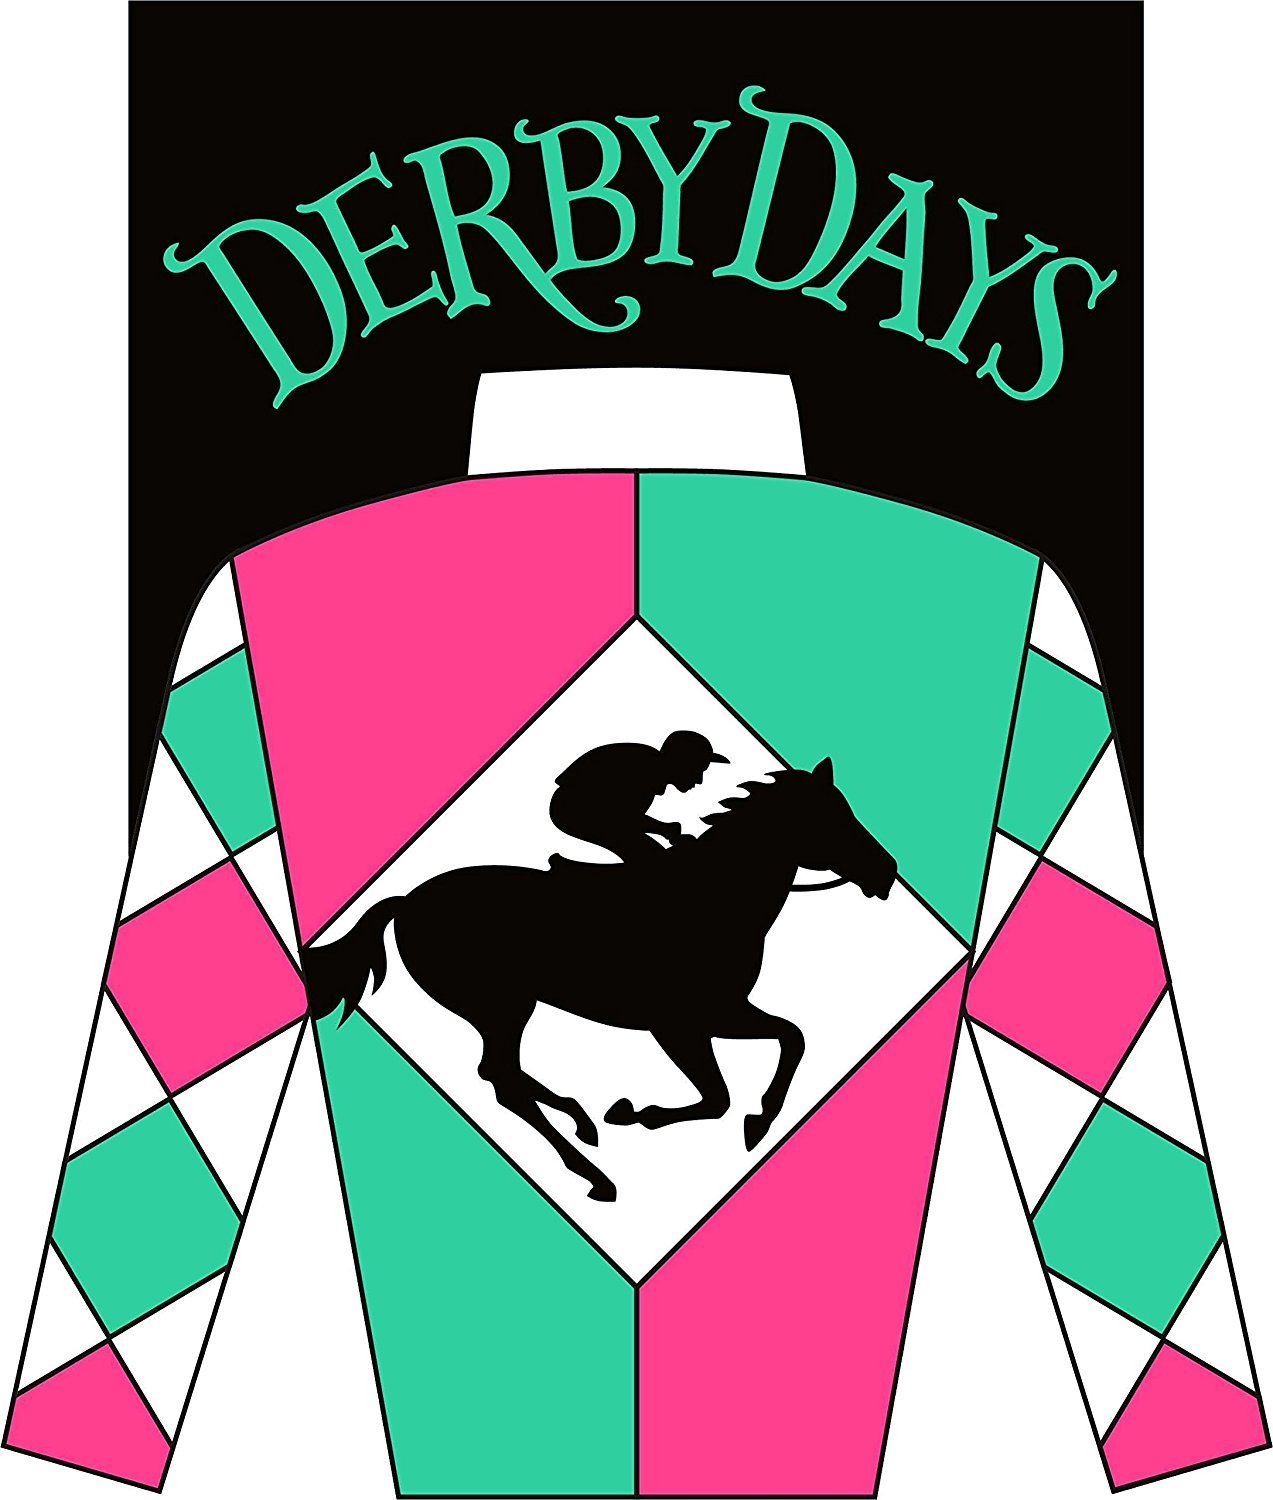 """ DERBY DAYS - HORSE RACING "" - Garden Size, 12 Inch X 18 Inch, Decorative Double Sided Applique Flag EMBROIDERED, License, Copyrights, Trademark by Custom Decor Inc."